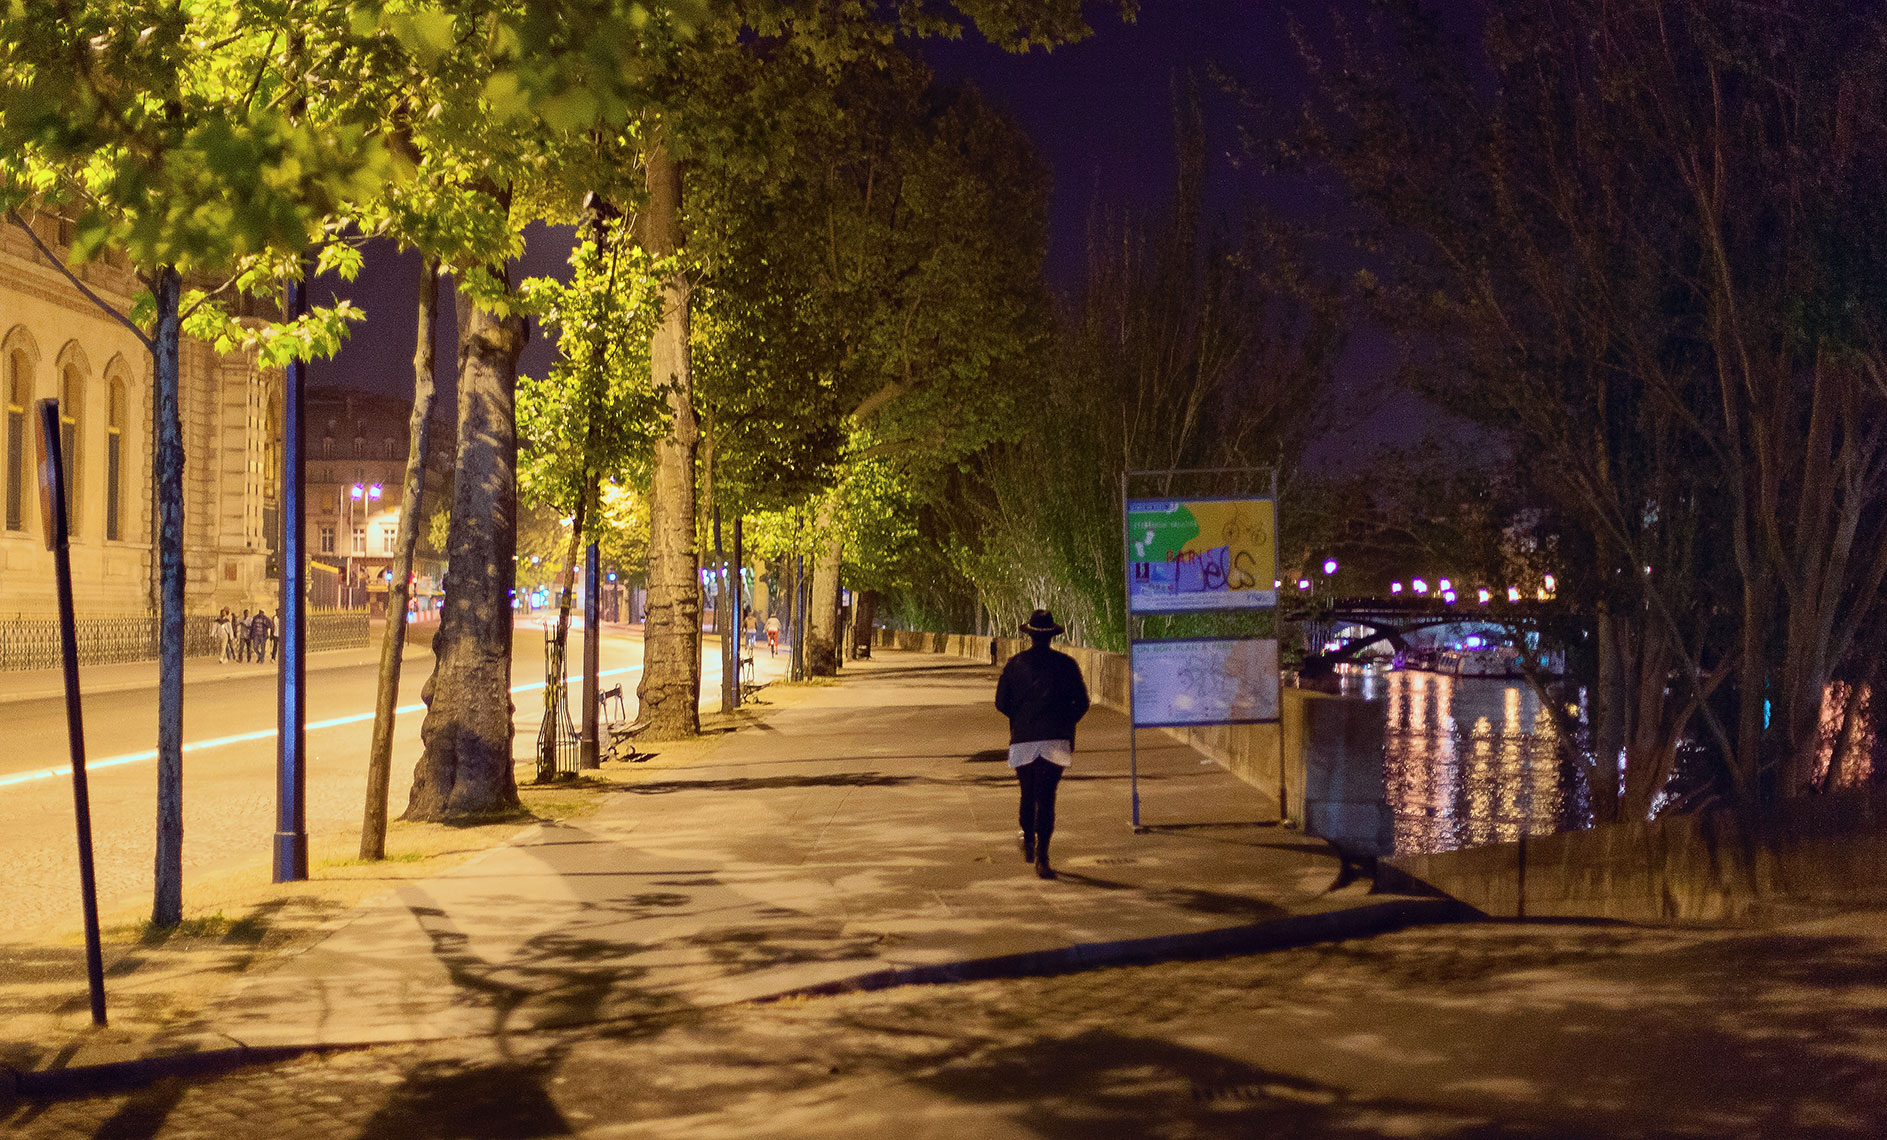 Artistic night landscape in Paris with single man walking next to trees along the river